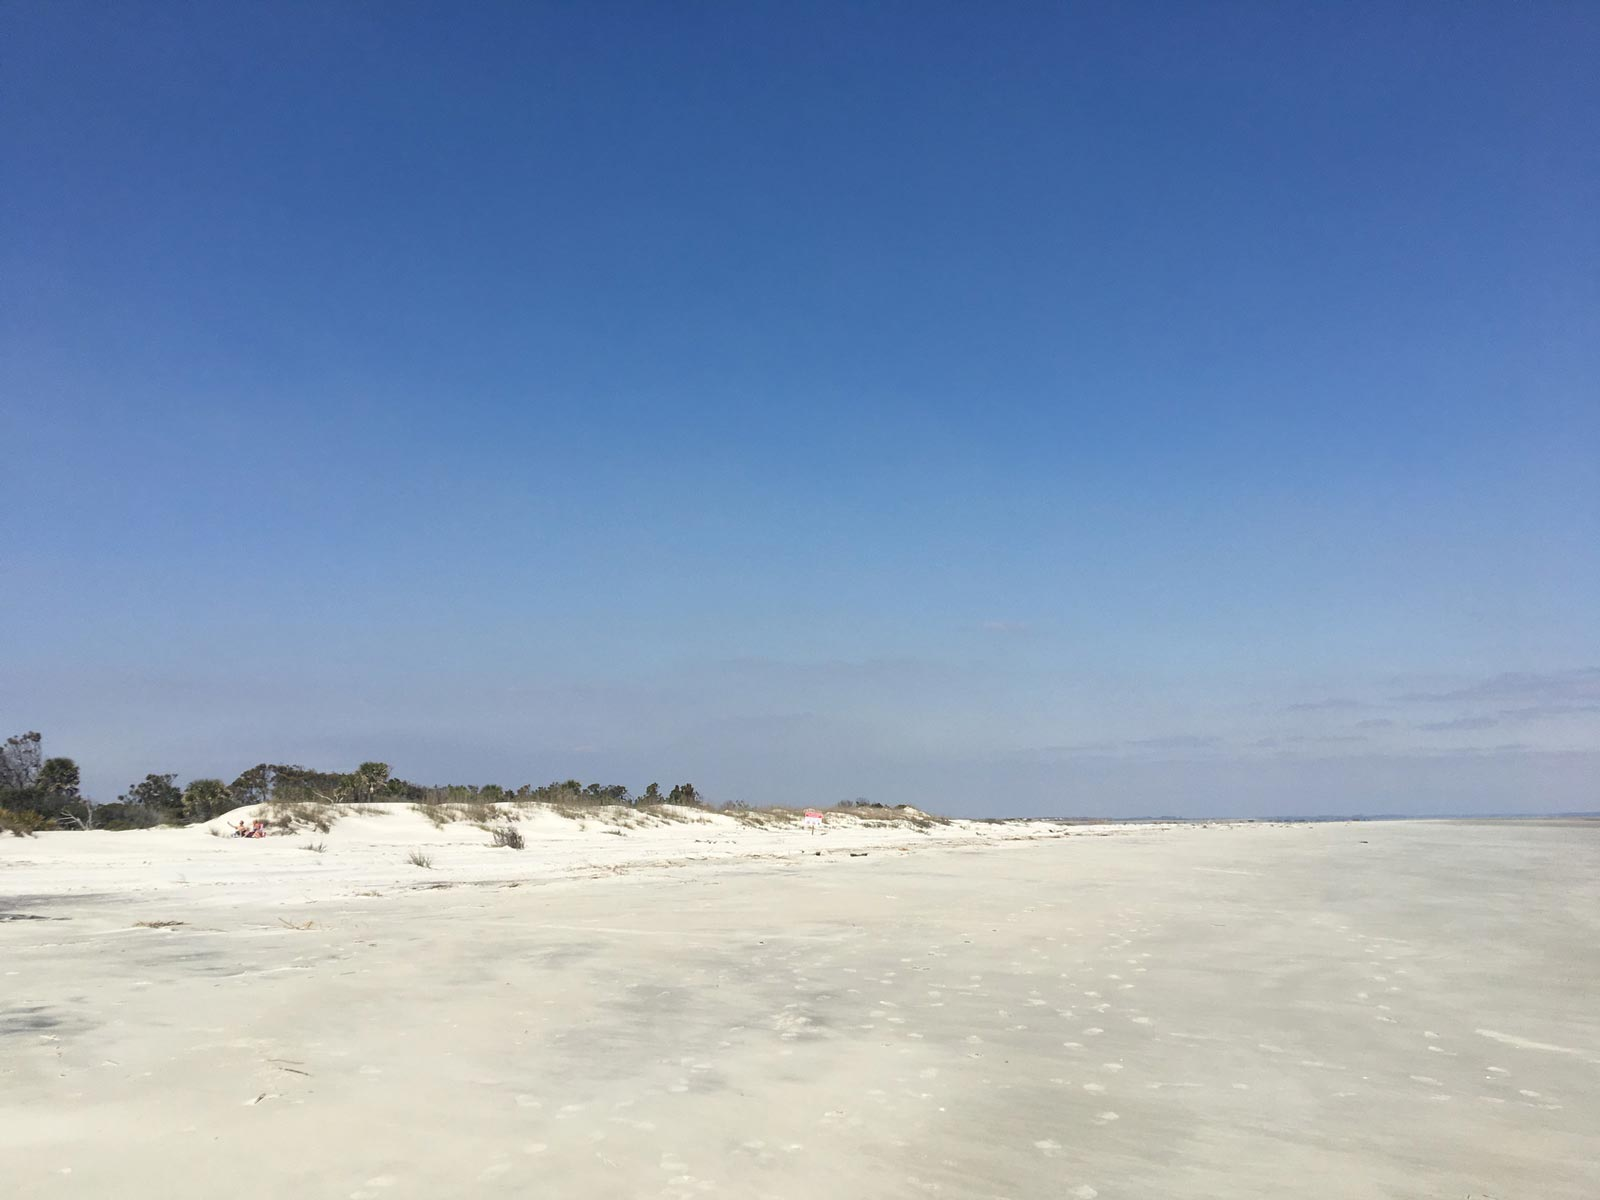 Beach front at Hunting Island State Park, South Carolina